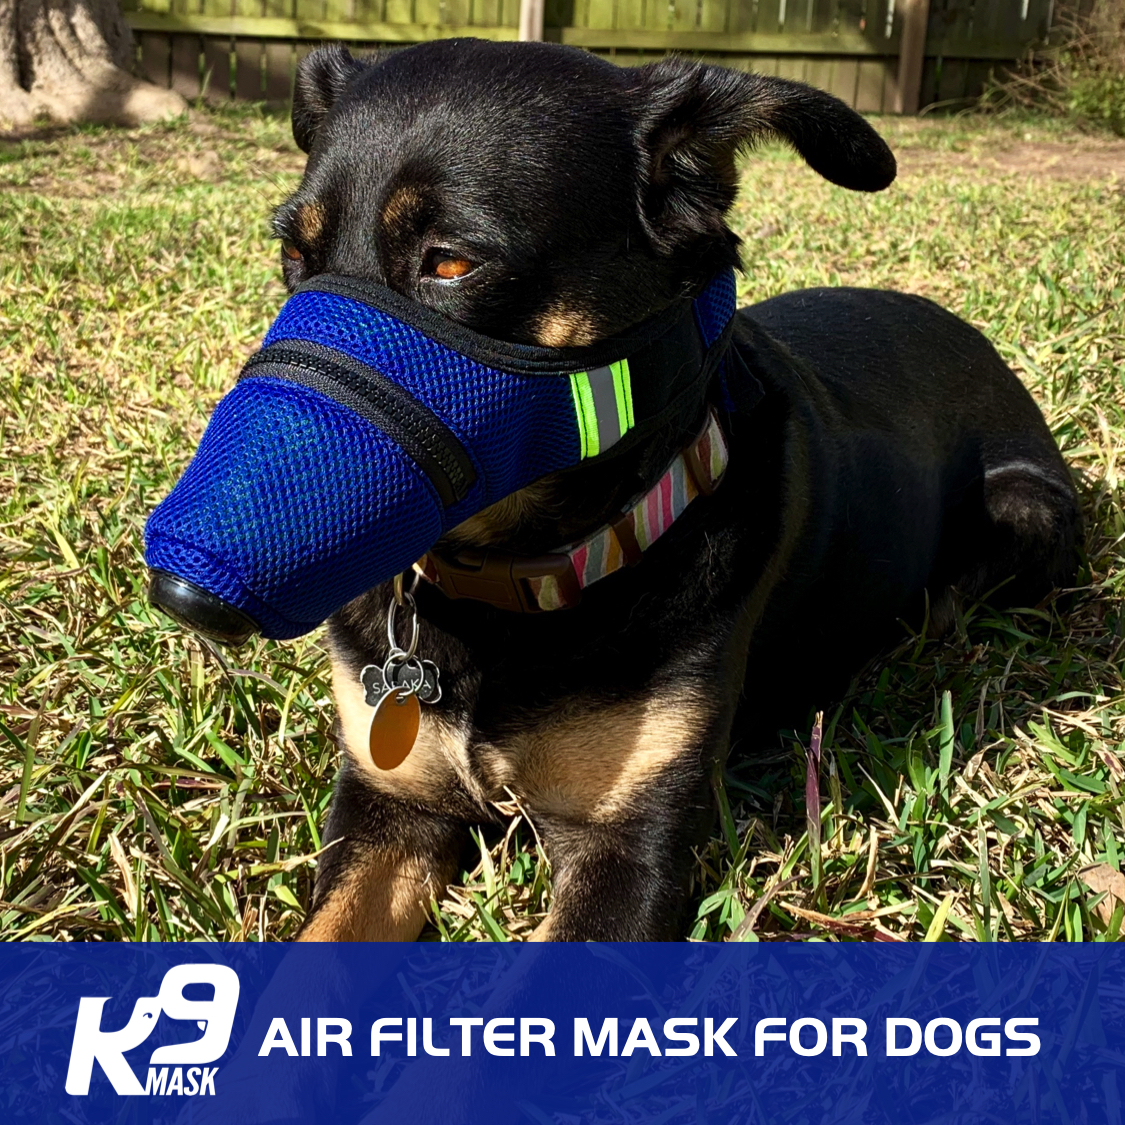 K9_Air_Filter_Mask_For_Dogs_JPG